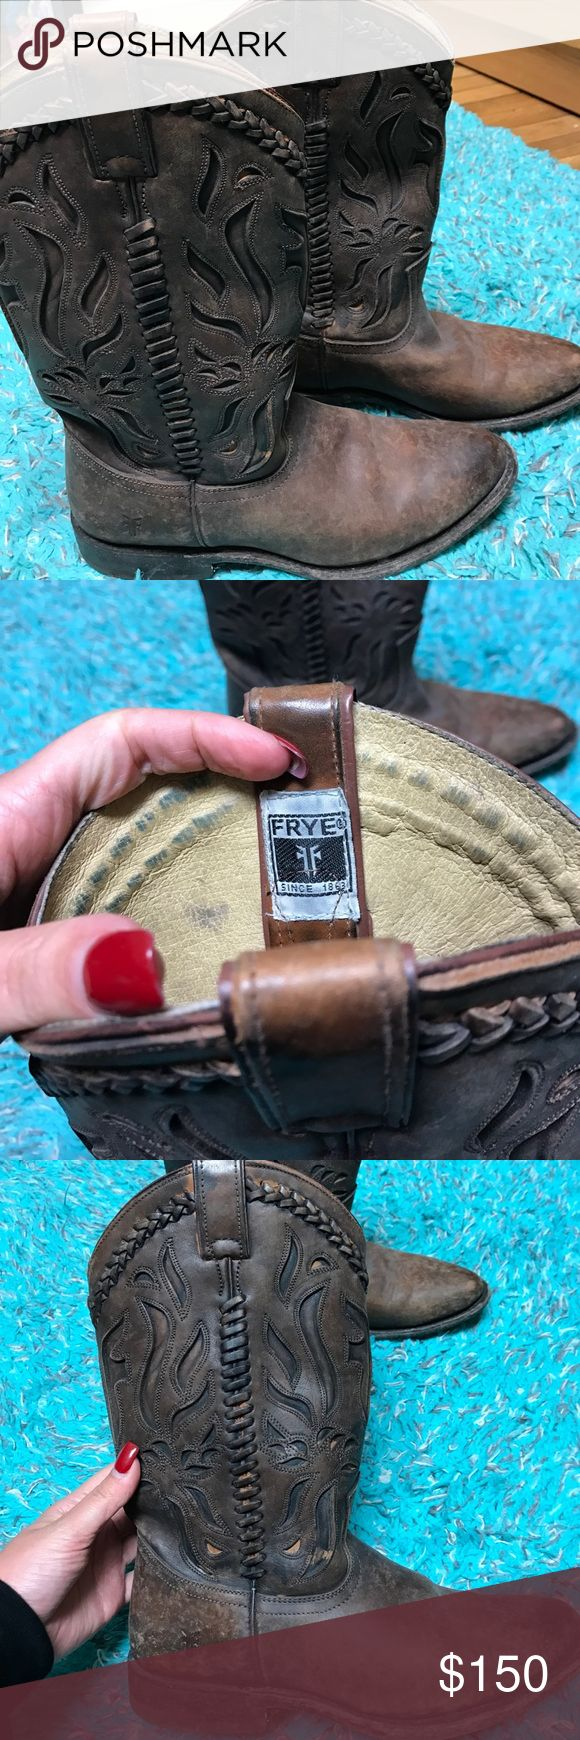 Frye riding boots, size 8 1/2 Beautiful Frye riding cowboy boots, size 8 1/2, worn once and in outstanding condition Frye Shoes Heeled Boots